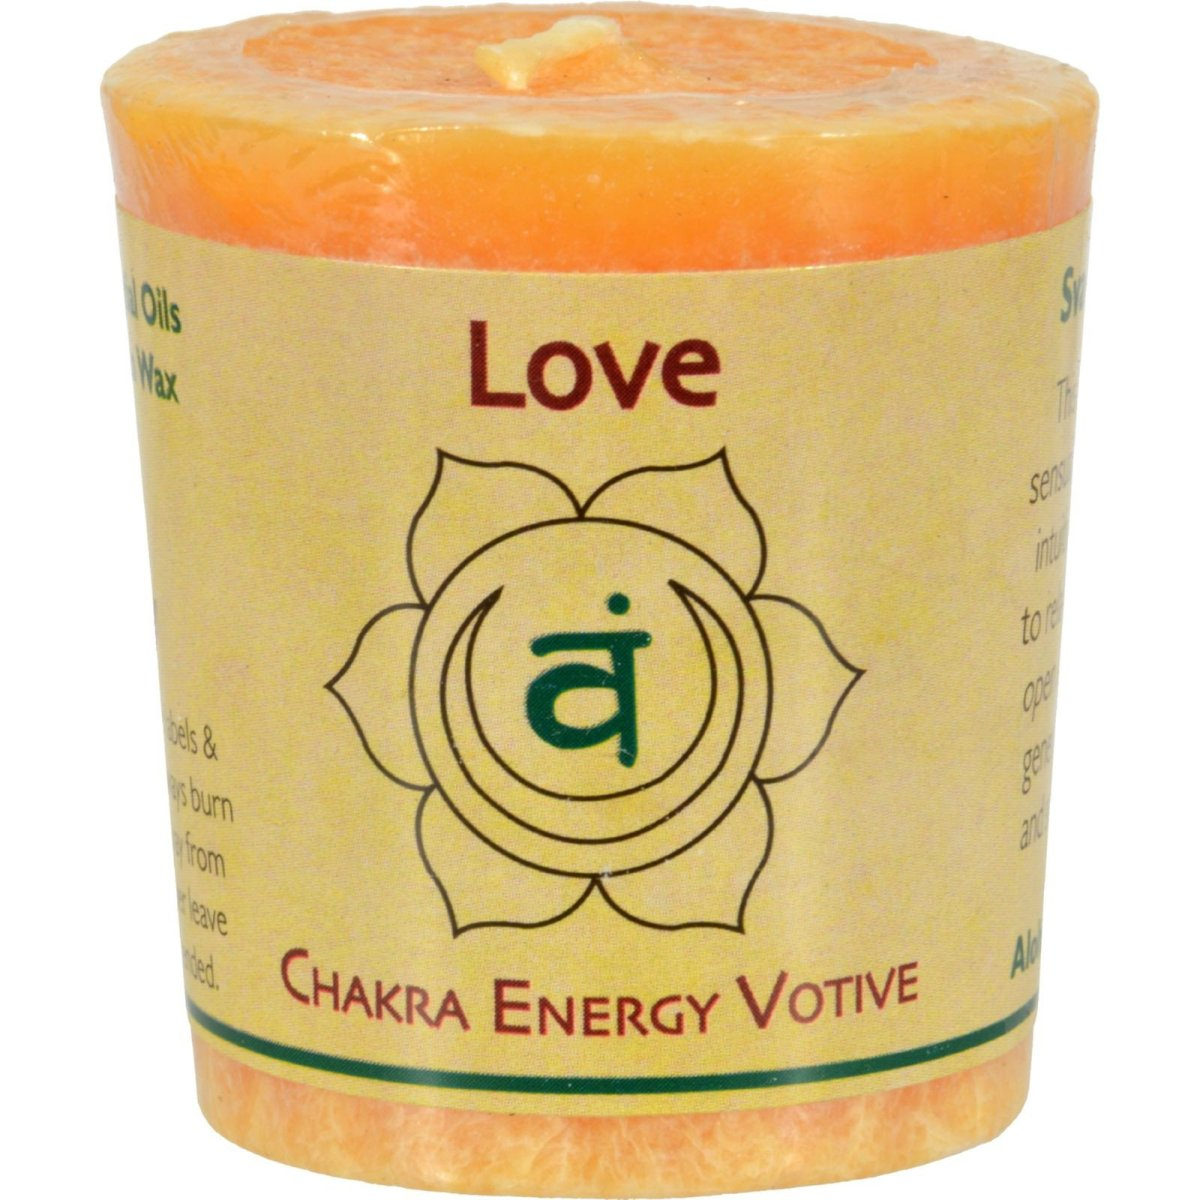 Love Votive With Healing Activation For Your Love Life